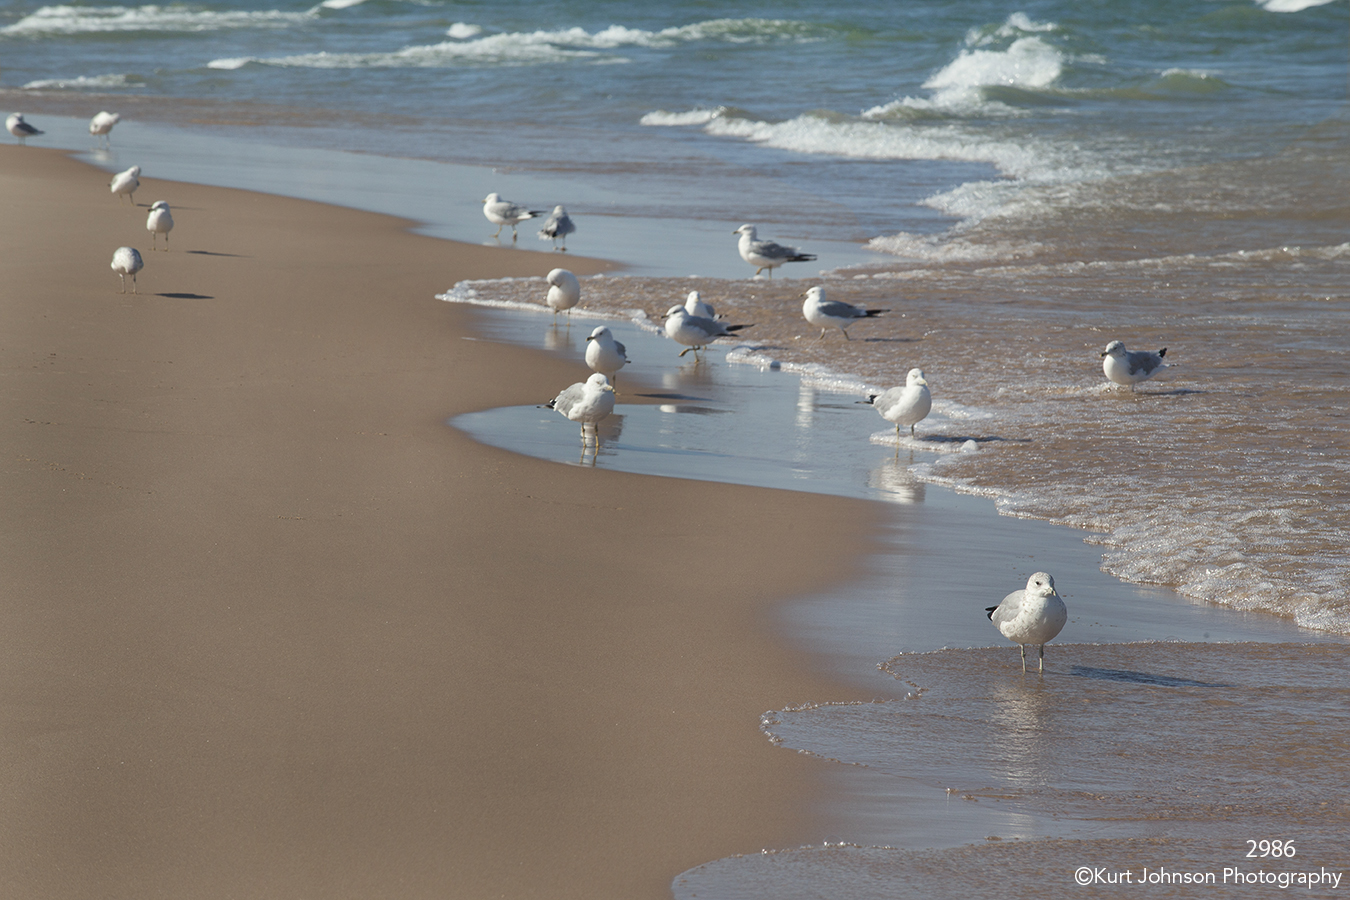 waterscape landscape ocean shore sand clouds sky wildlife birds seagull waves water